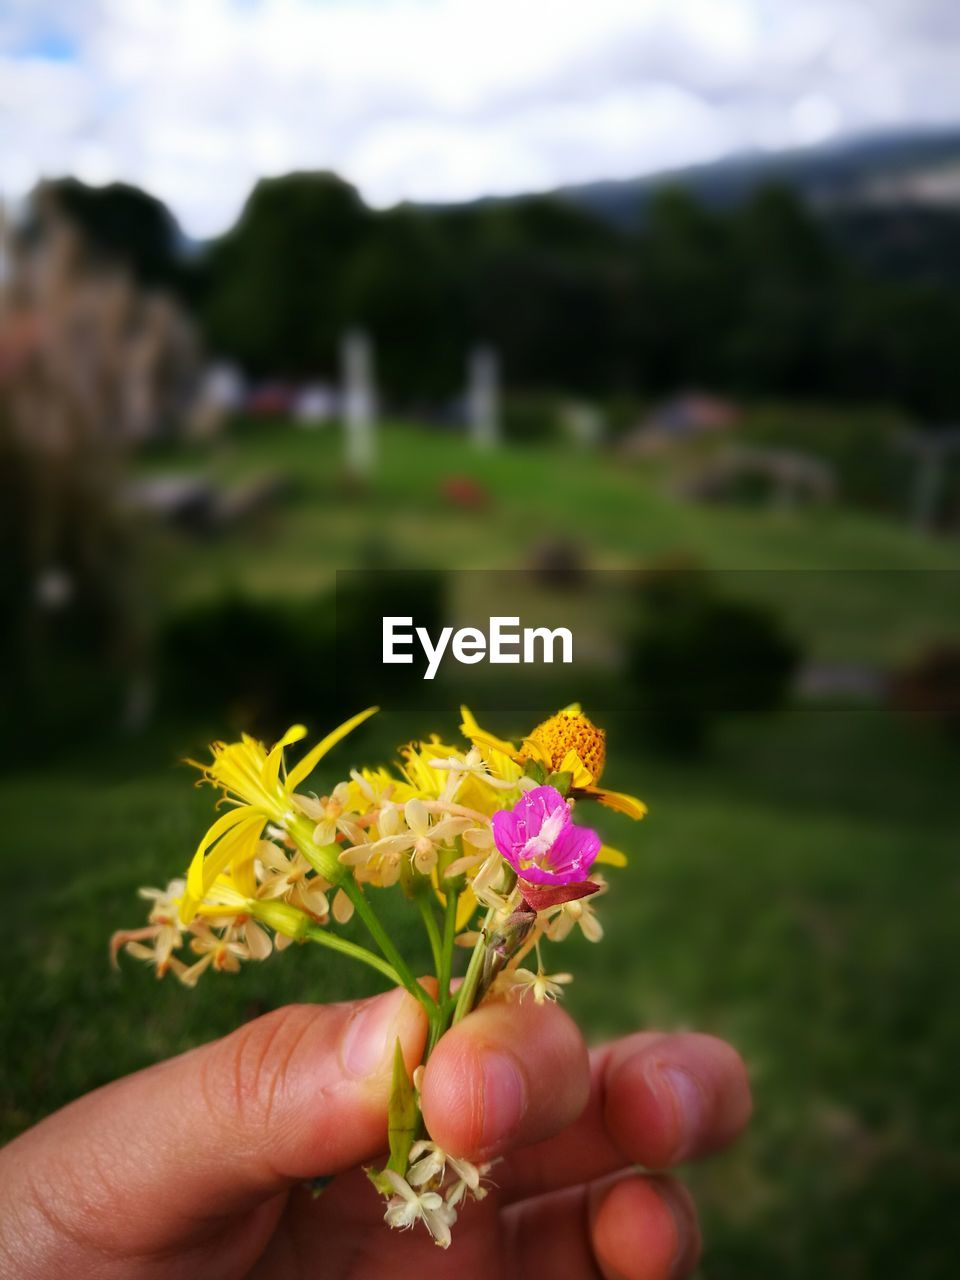 Cropped hand of person holding flowers